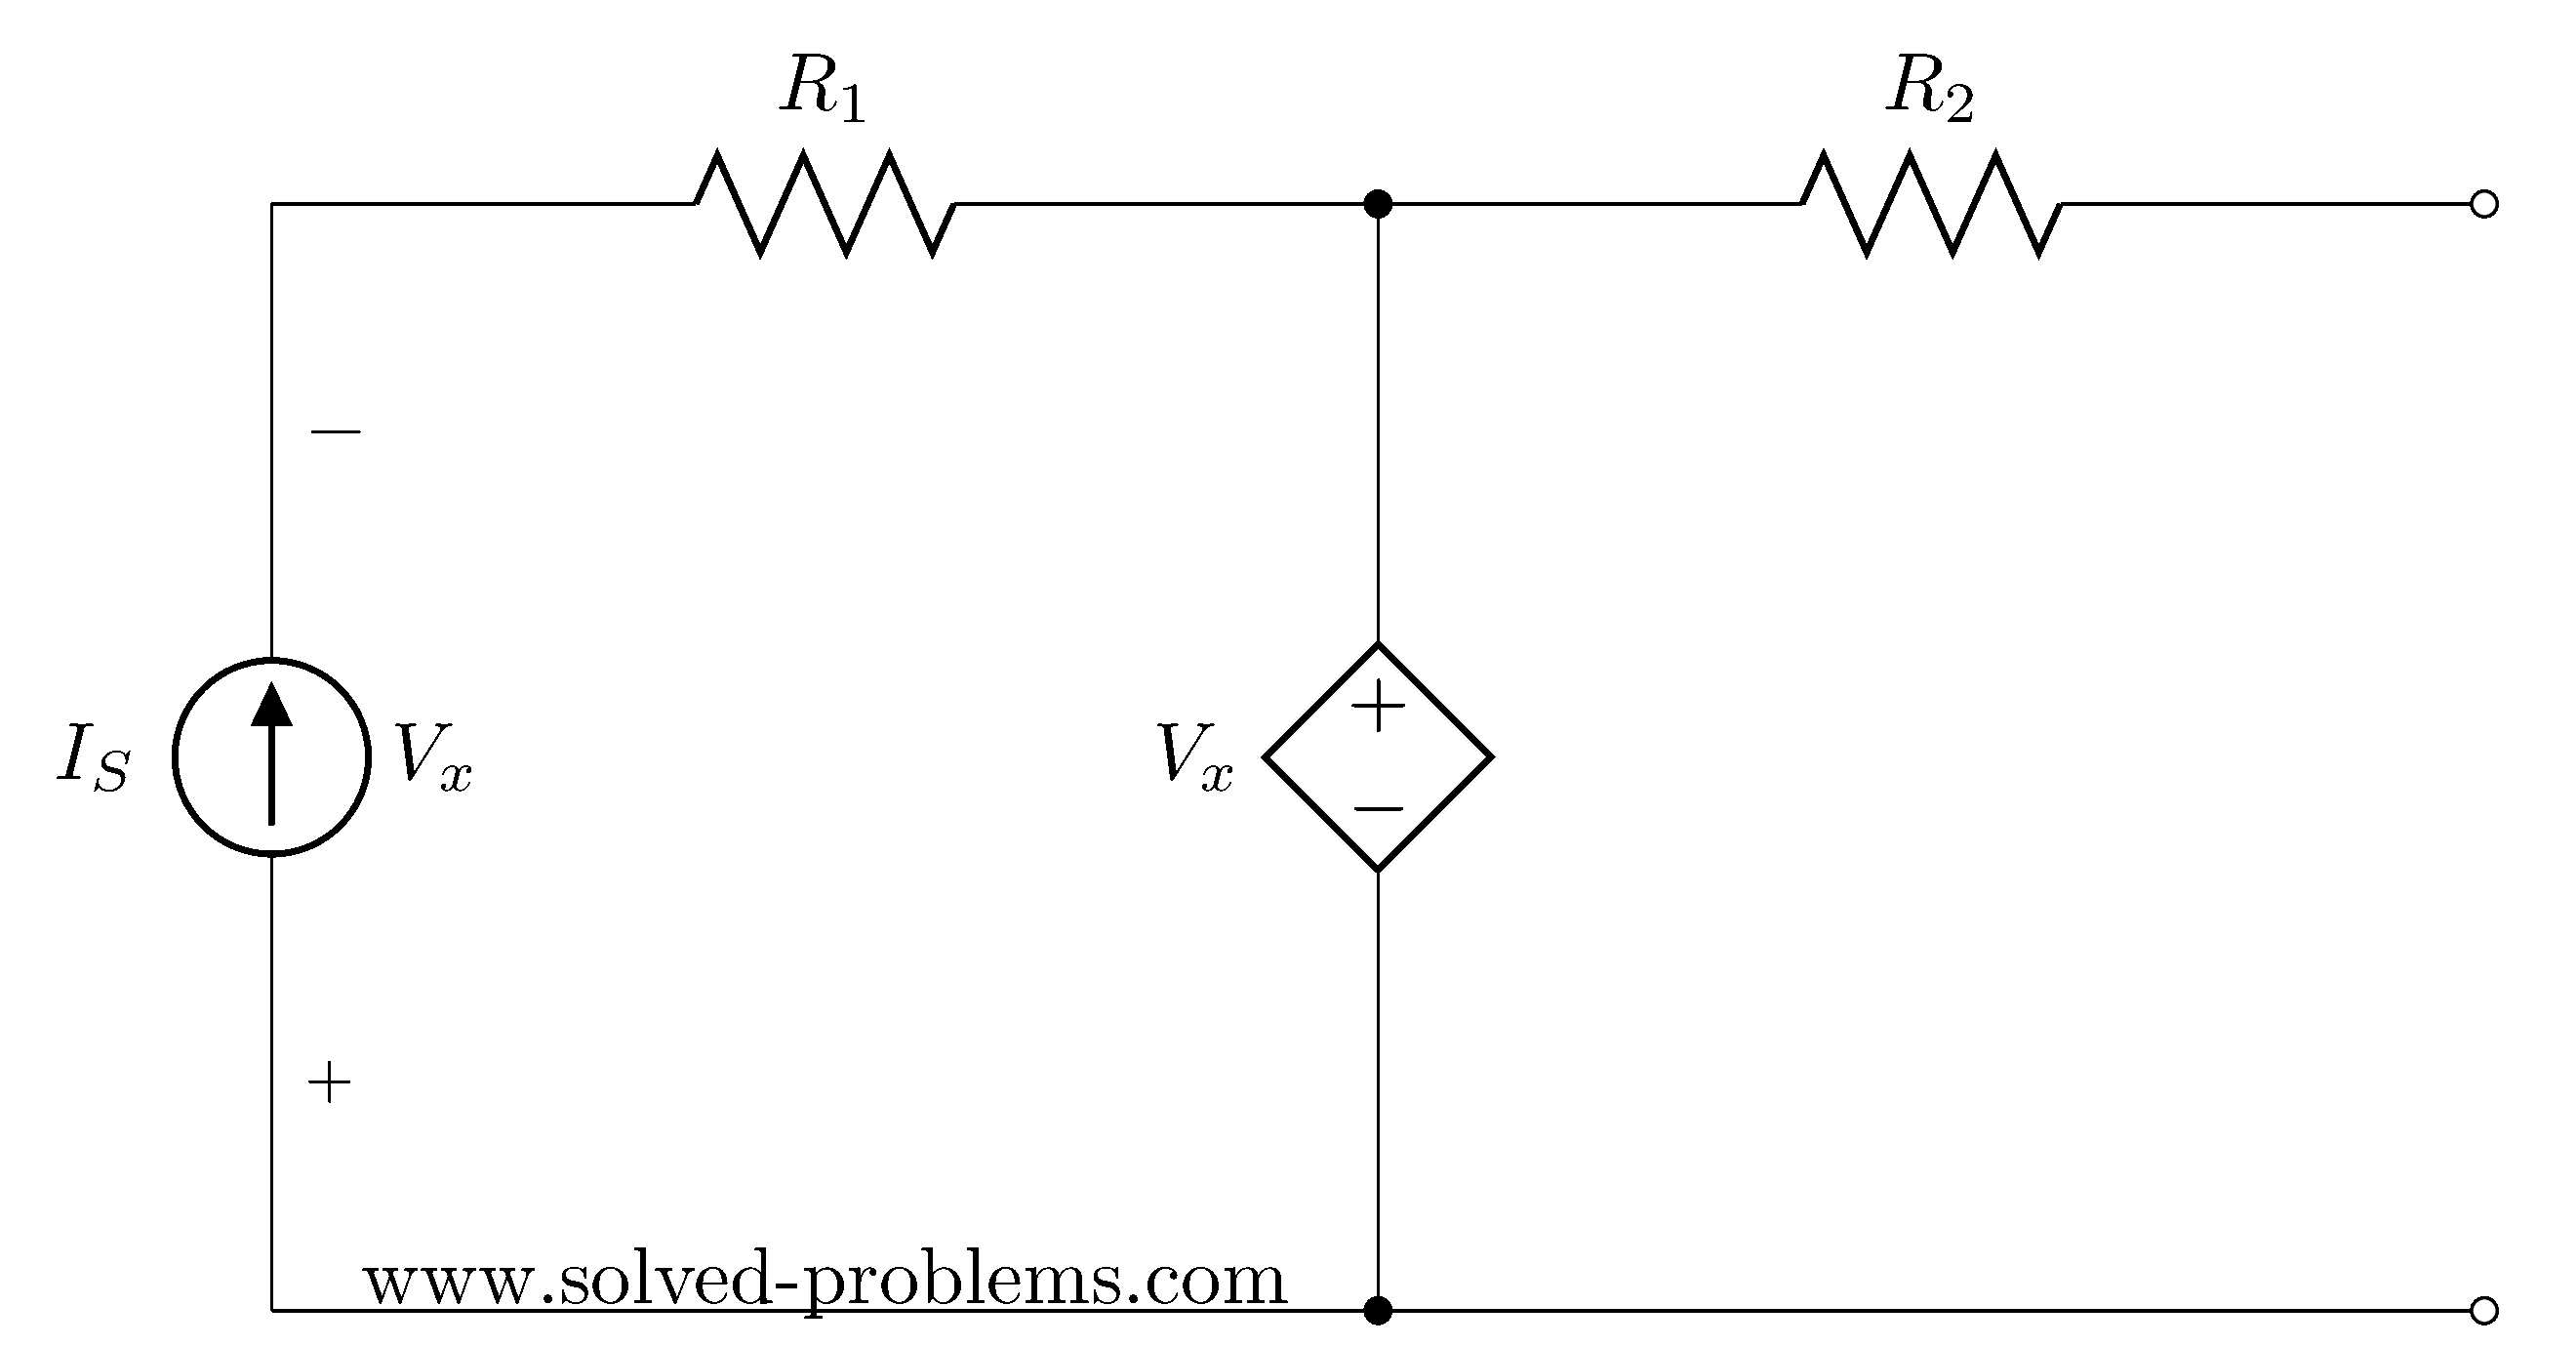 Solved Problems A Source Of Free Alternating Current Circuits 1254 1